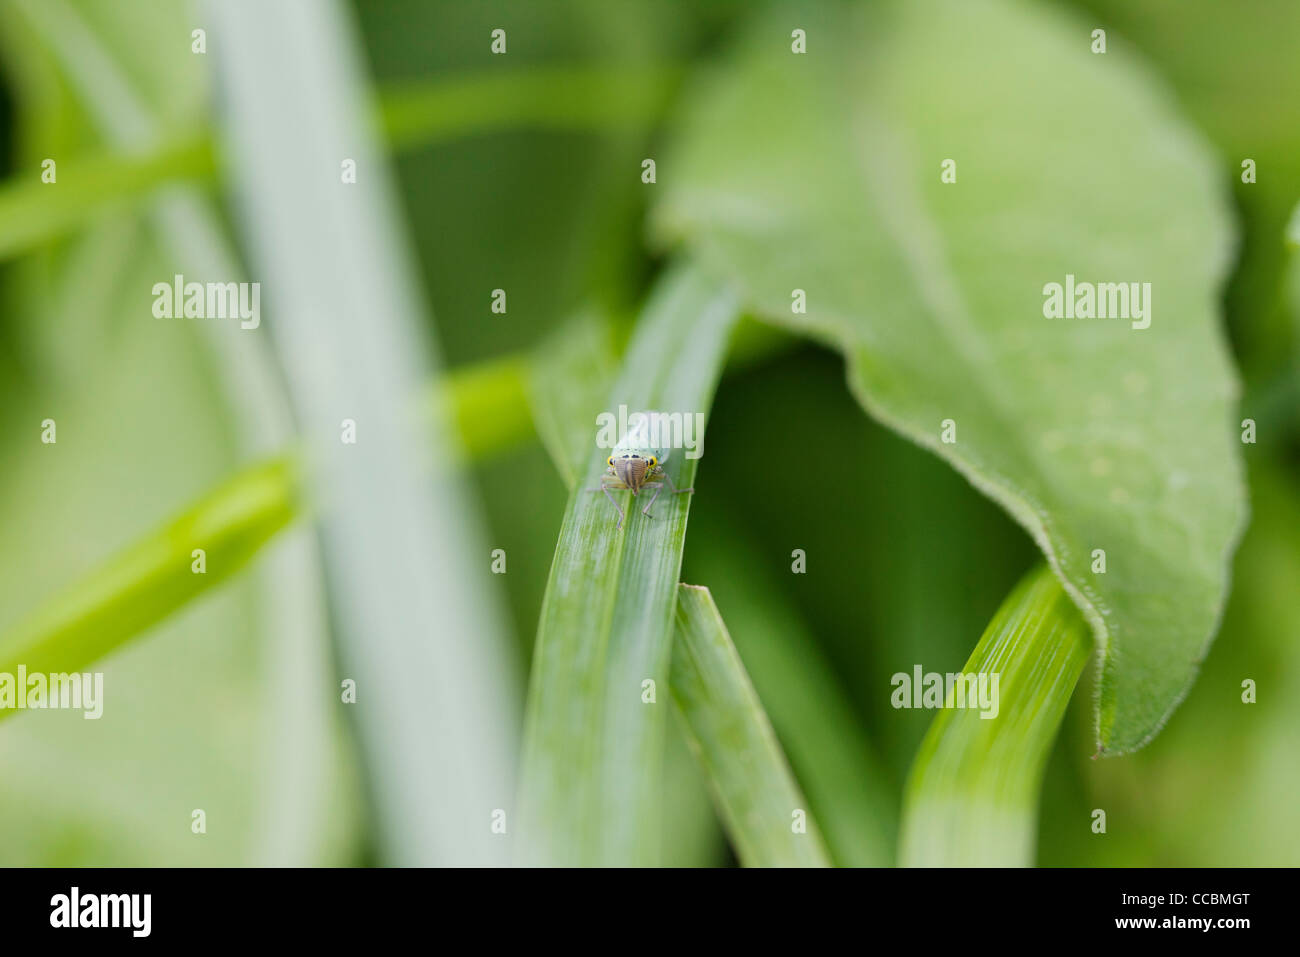 Insect on blade of grass - Stock Image